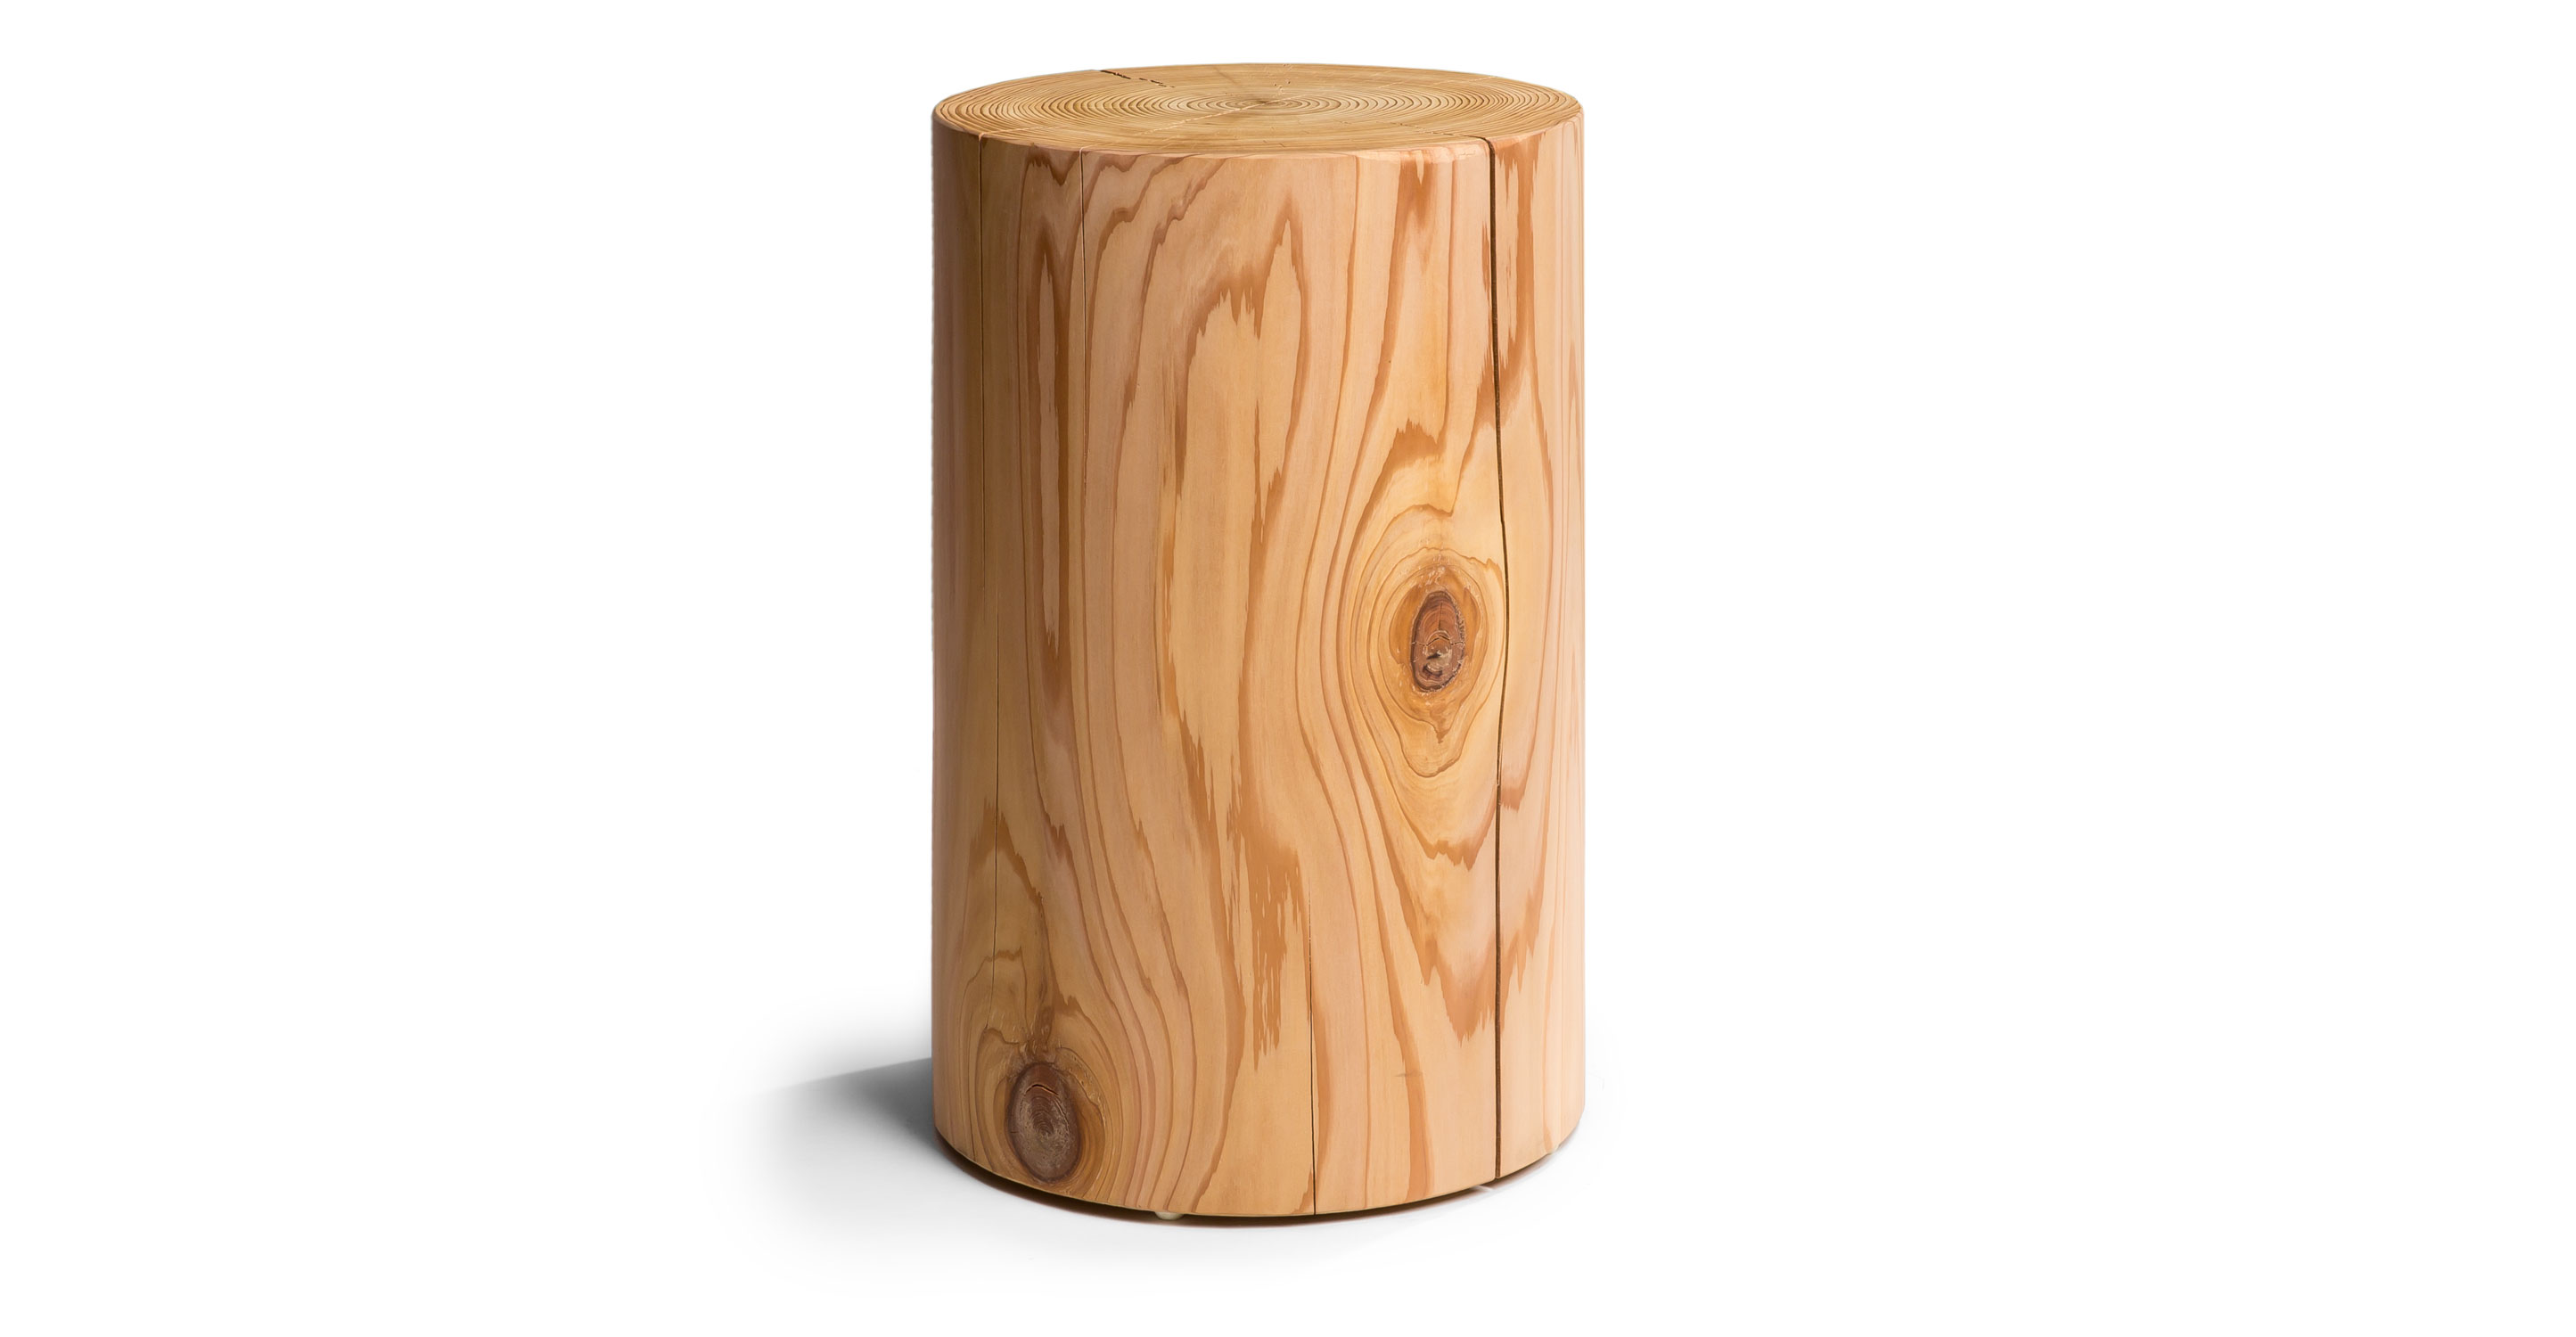 "Thuja Block 22"" Cylinder Wood Blocks Article"